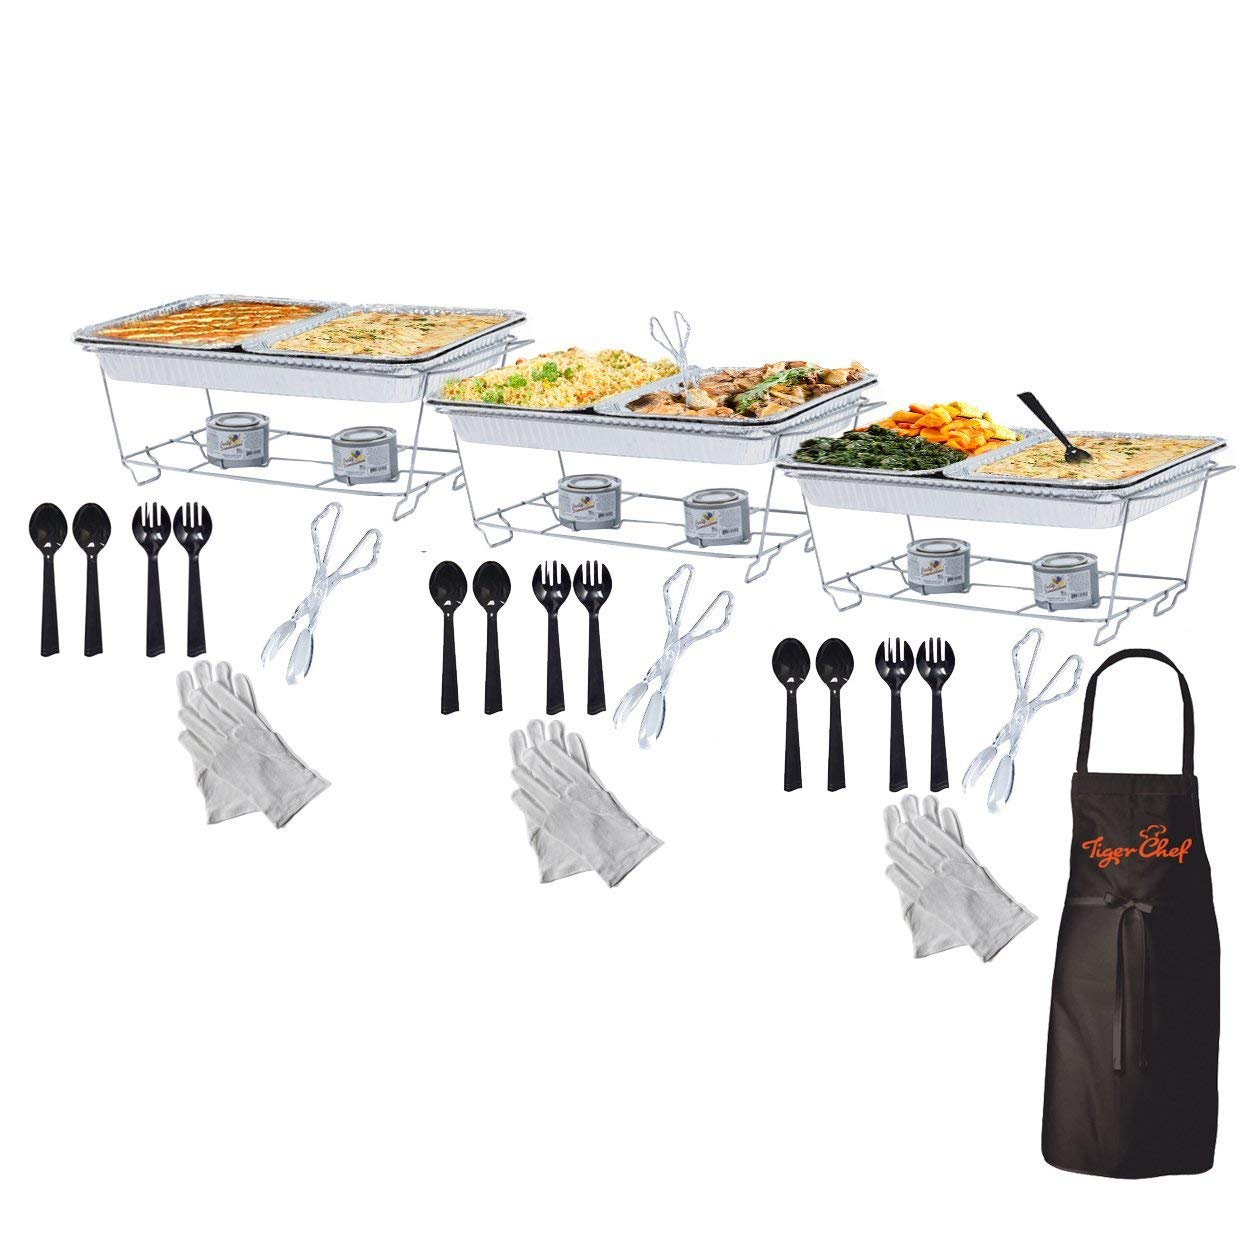 Tiger Chef Full Size Disposable Wire Chafer Stand Kit, Set Includes White Waitress Gloves, White, 40 Piece by Tiger Chef (Image #2)